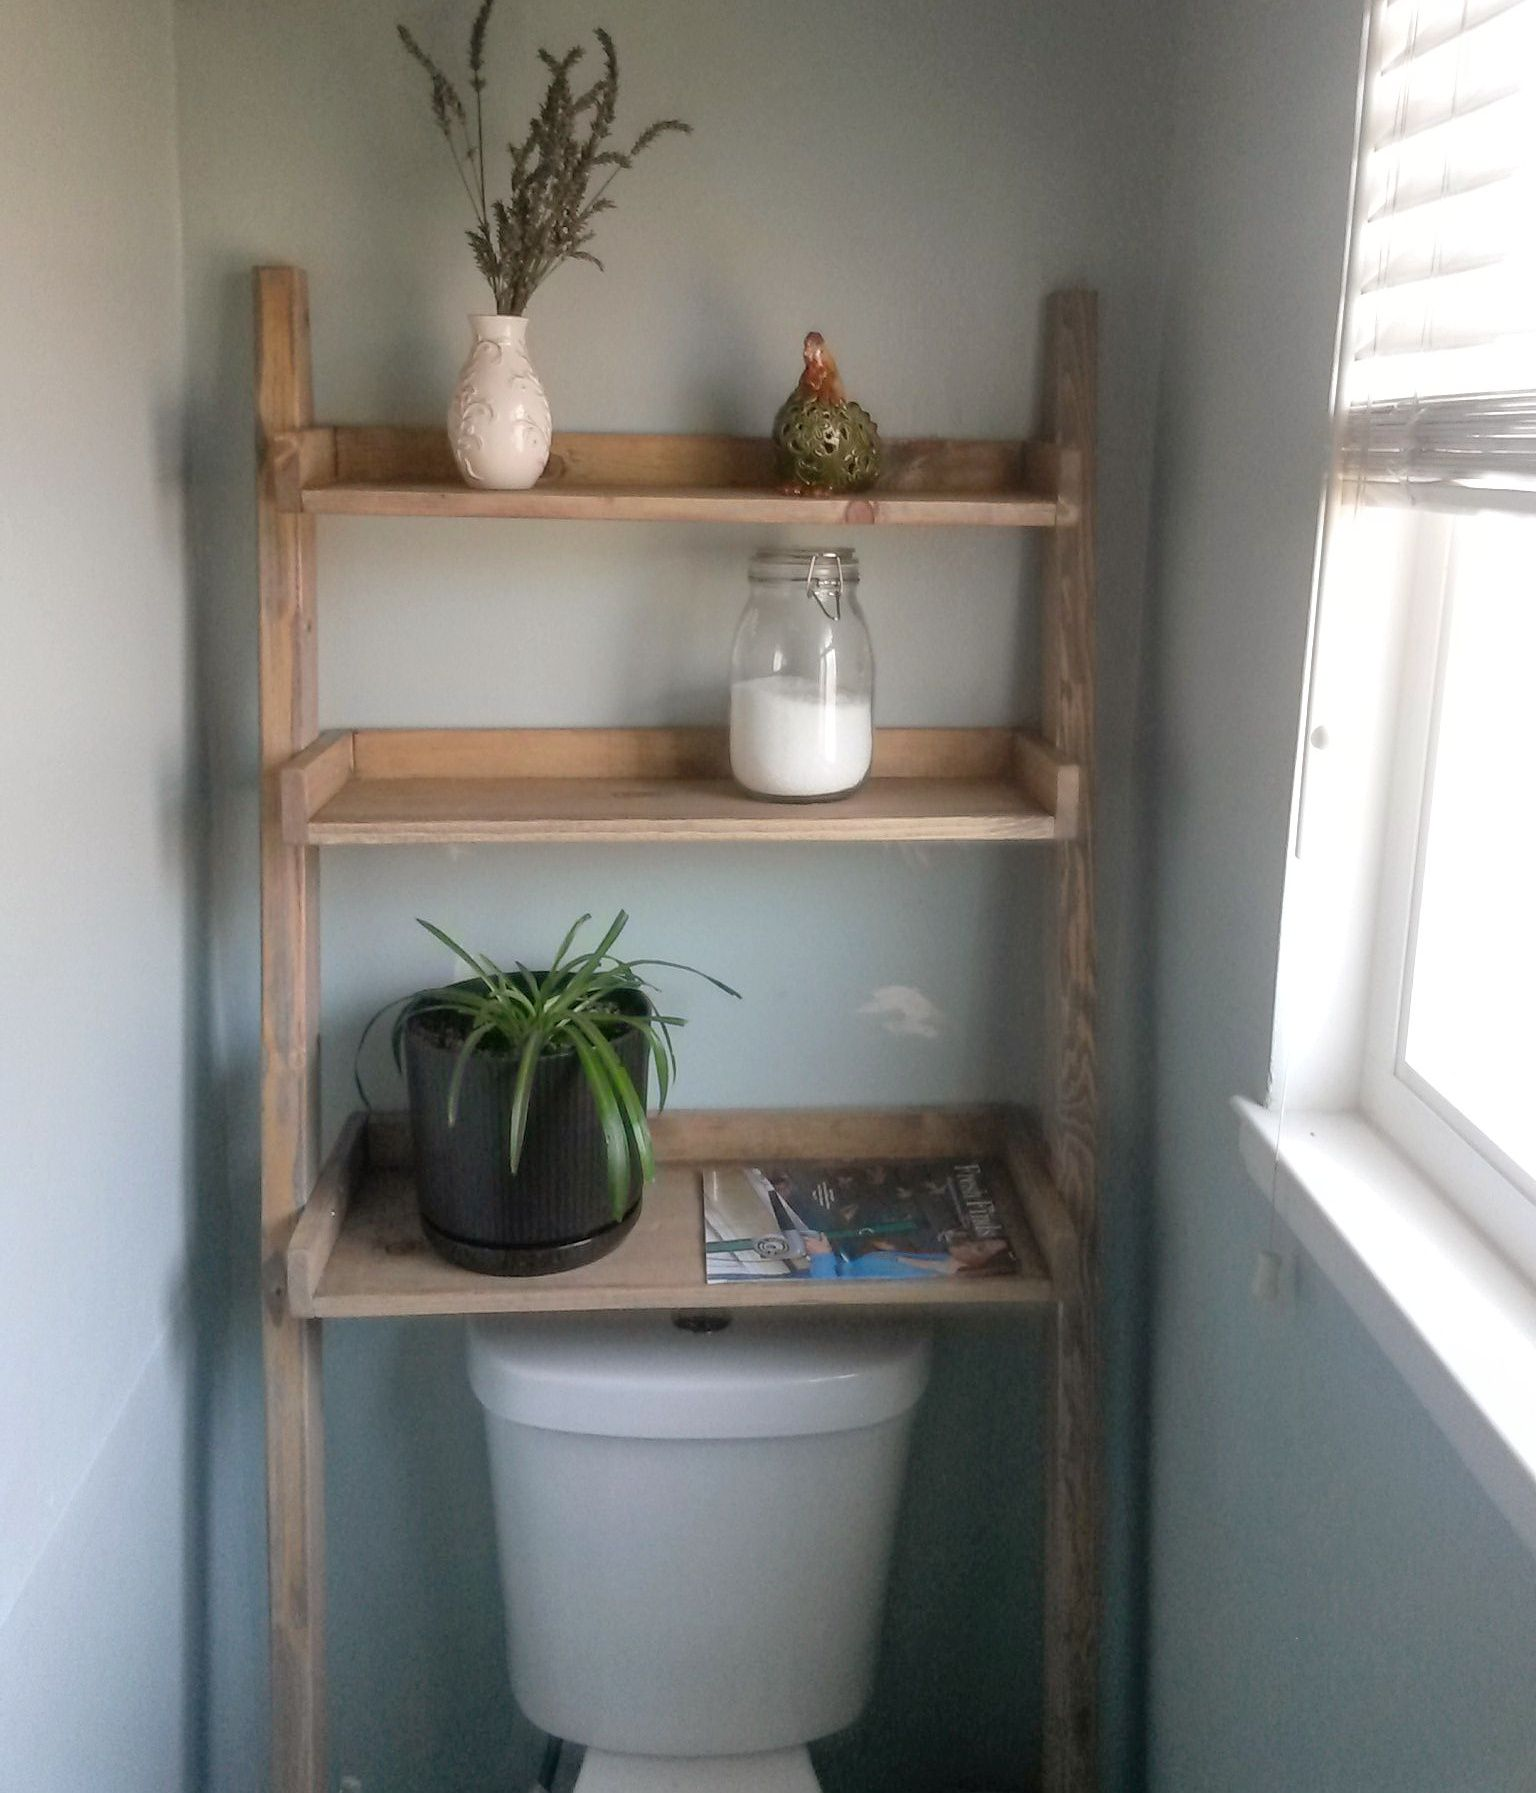 Storage Ladder Do It Yourself Home Projects From Ana White Shelves Over Toilet Bathroom Shelf Decor Bathroom Storage Shelves